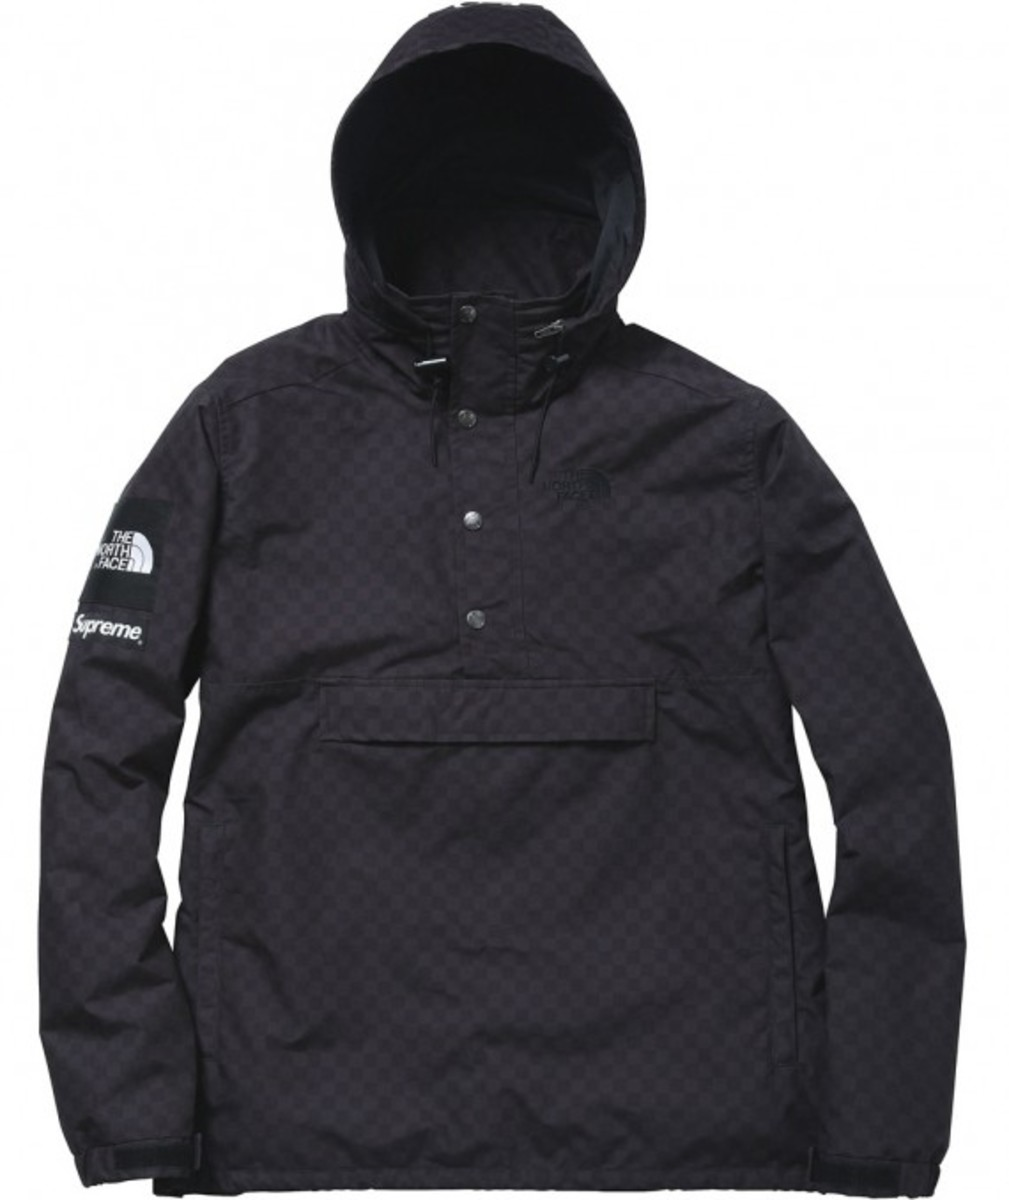 the-north-face-supreme-spring-2011-collection-01